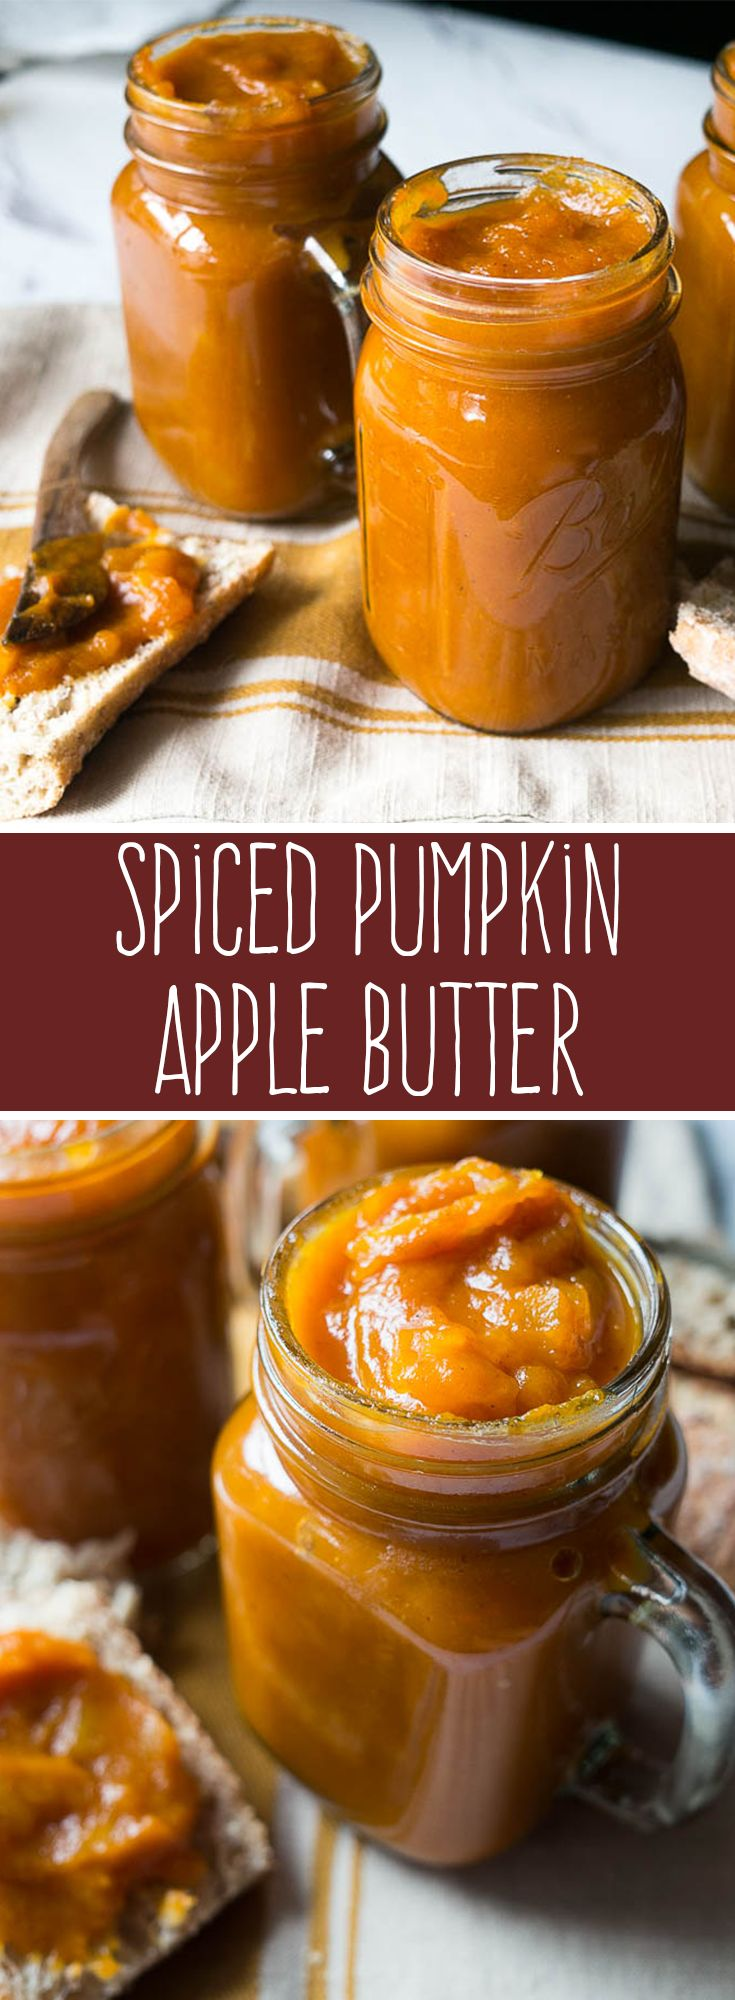 This Pressure Cooker Spiced Pumpkin Apple Butter is a tasty seasonal treat to slather on fresh bread, pancakes, or even as a topping for ice cream. Makes your house smell fabulous too!